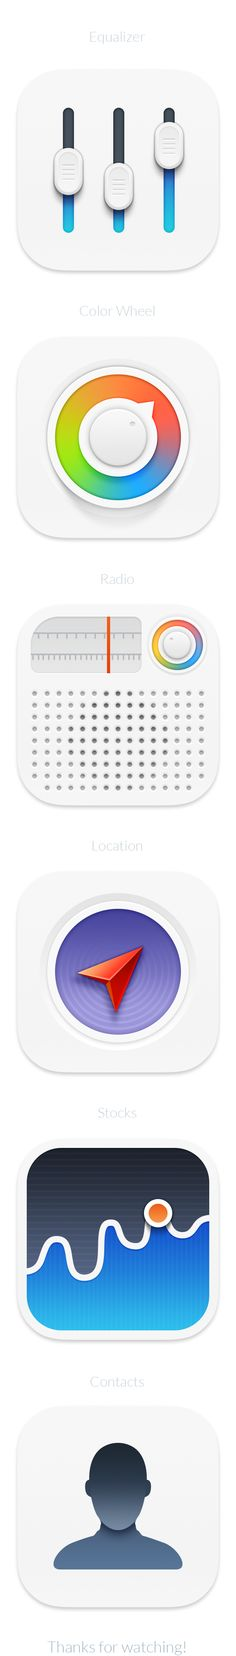 iOS 7 Minimanimal icons replacement by Jackie Tran Anh, via Behance